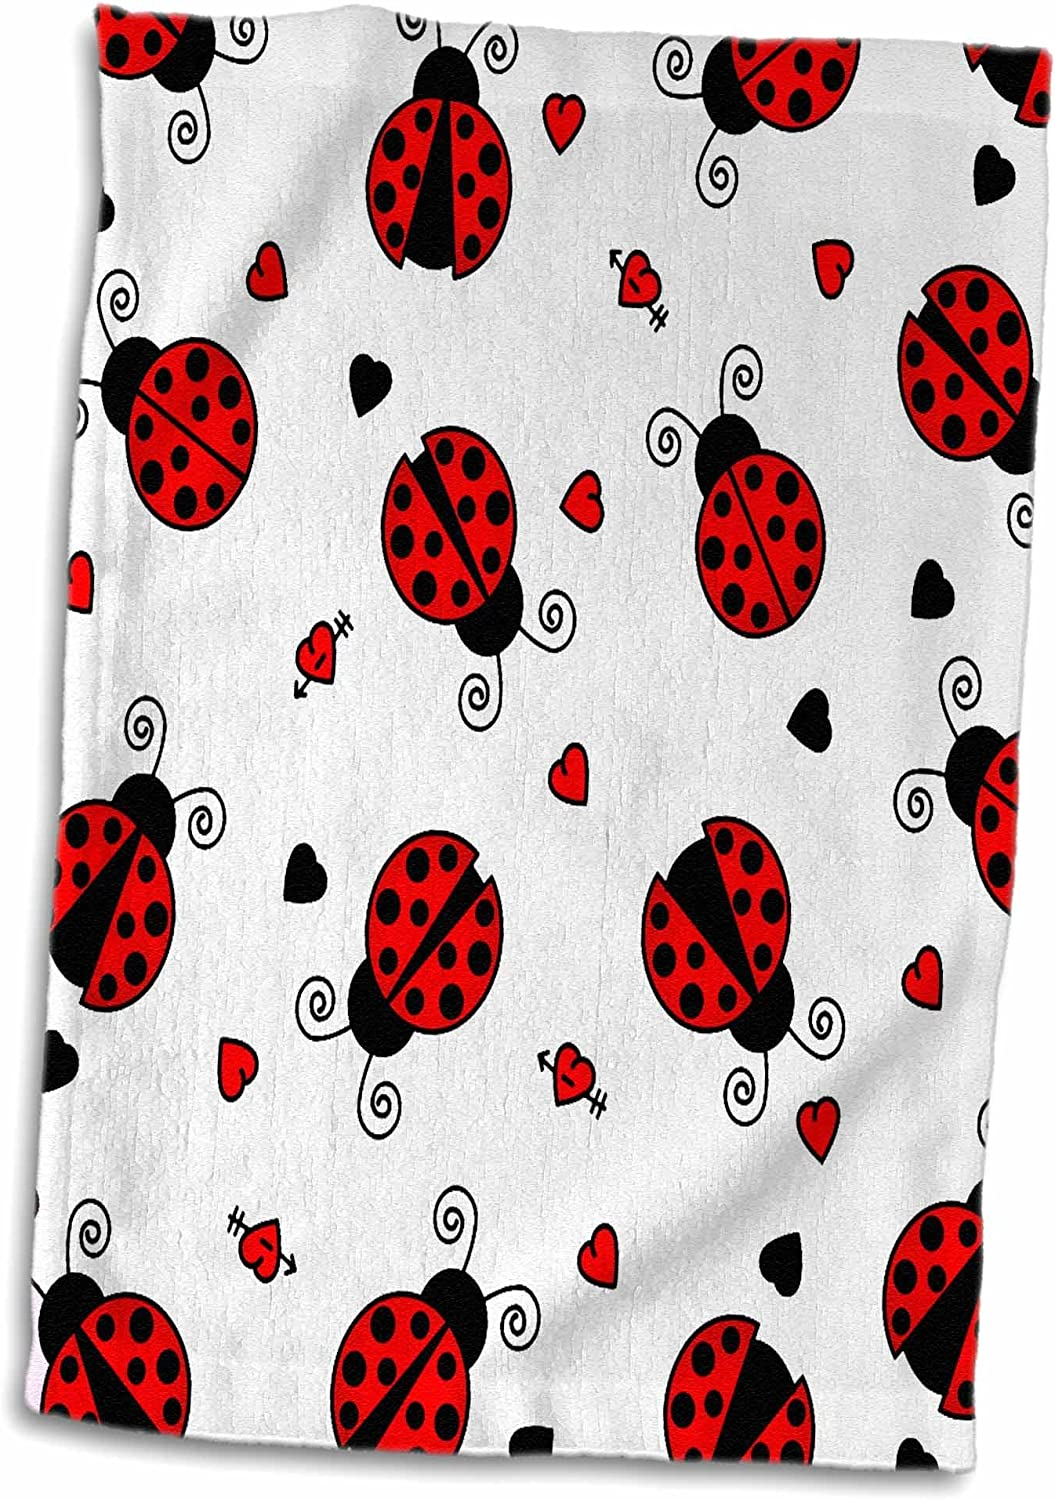 3D Rose Love Bugs Red Ladybug Print with Hearts TWL/_12100/_1 Towel 15 x 22